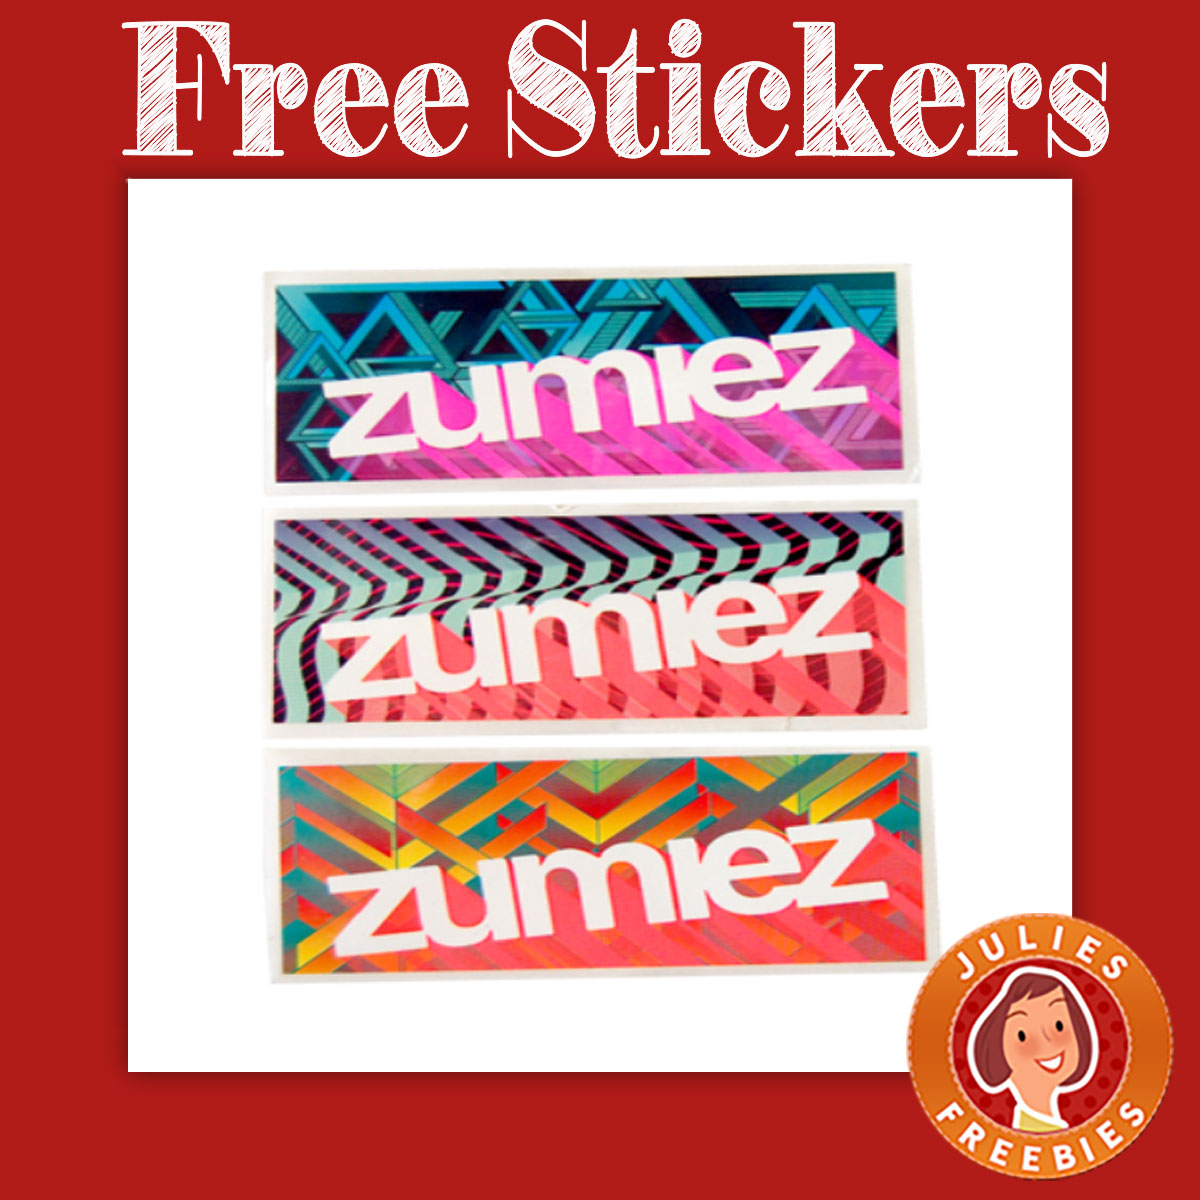 free stickers from zumiez julie 39 s freebies. Black Bedroom Furniture Sets. Home Design Ideas